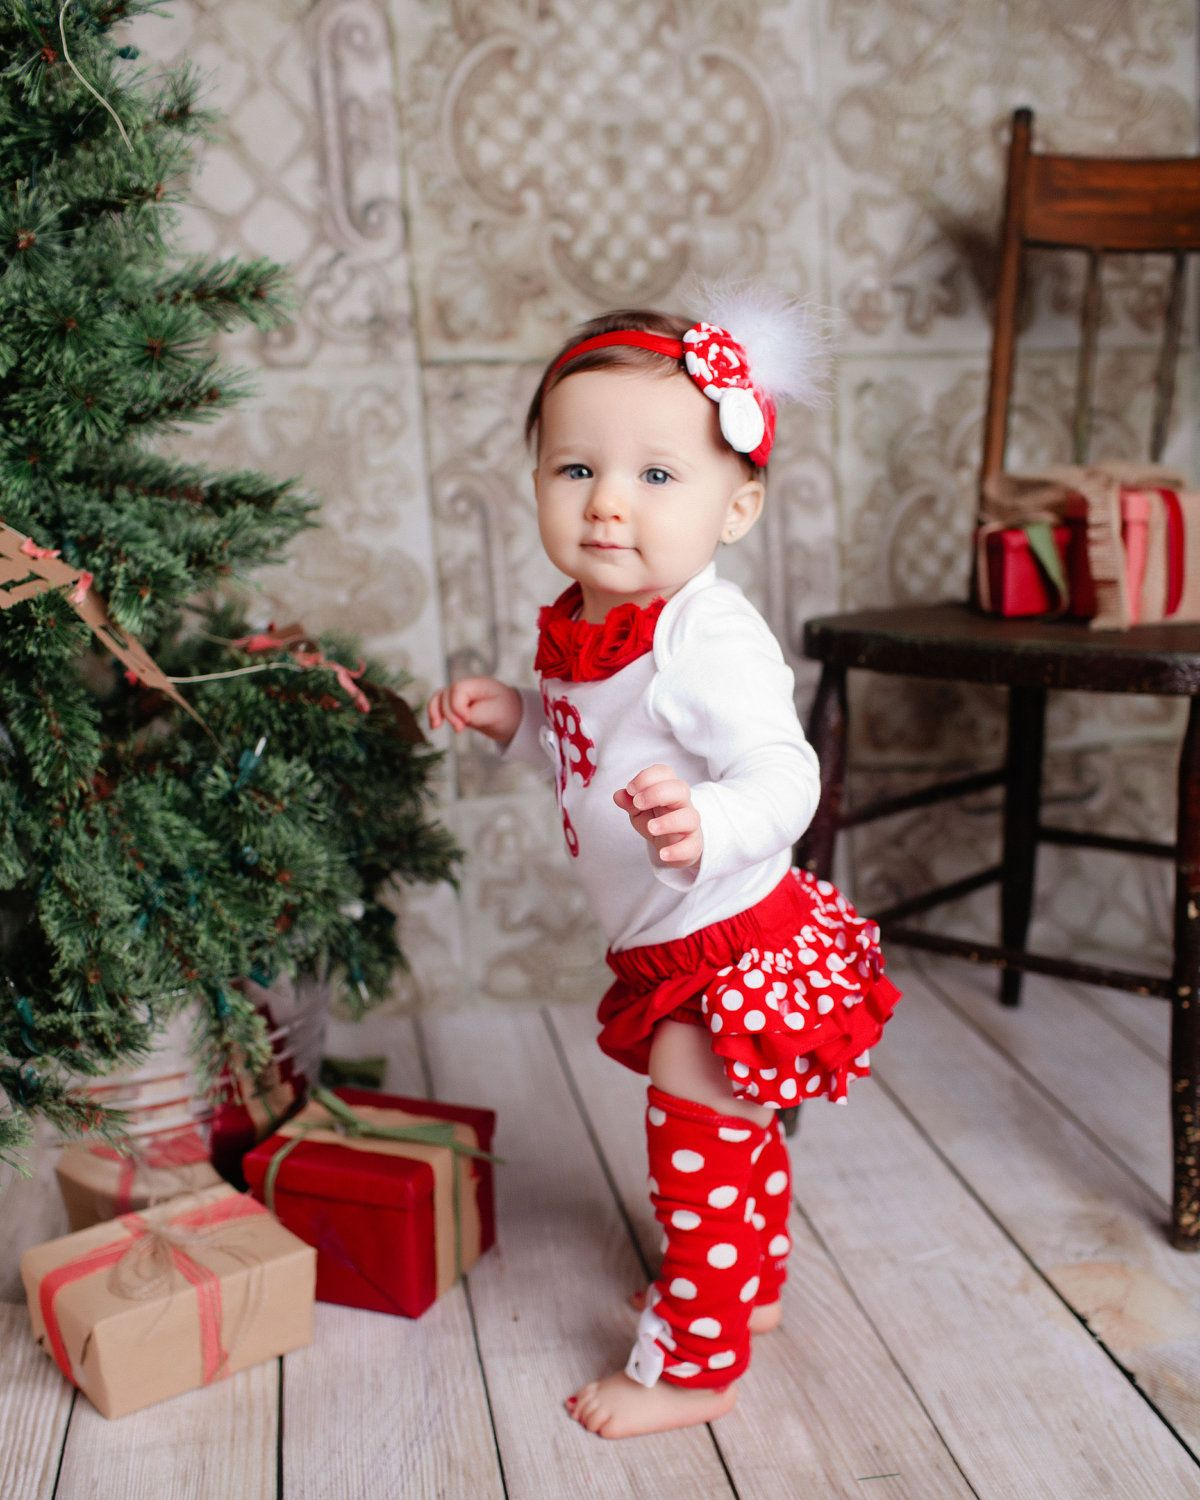 Tiny Dresses, Big Style Nothing's more fun than shopping for your baby girl's first holiday outfit. Dress her up in holly jolly festiveness—look for cute little sets perfect for getting together with the family for a .